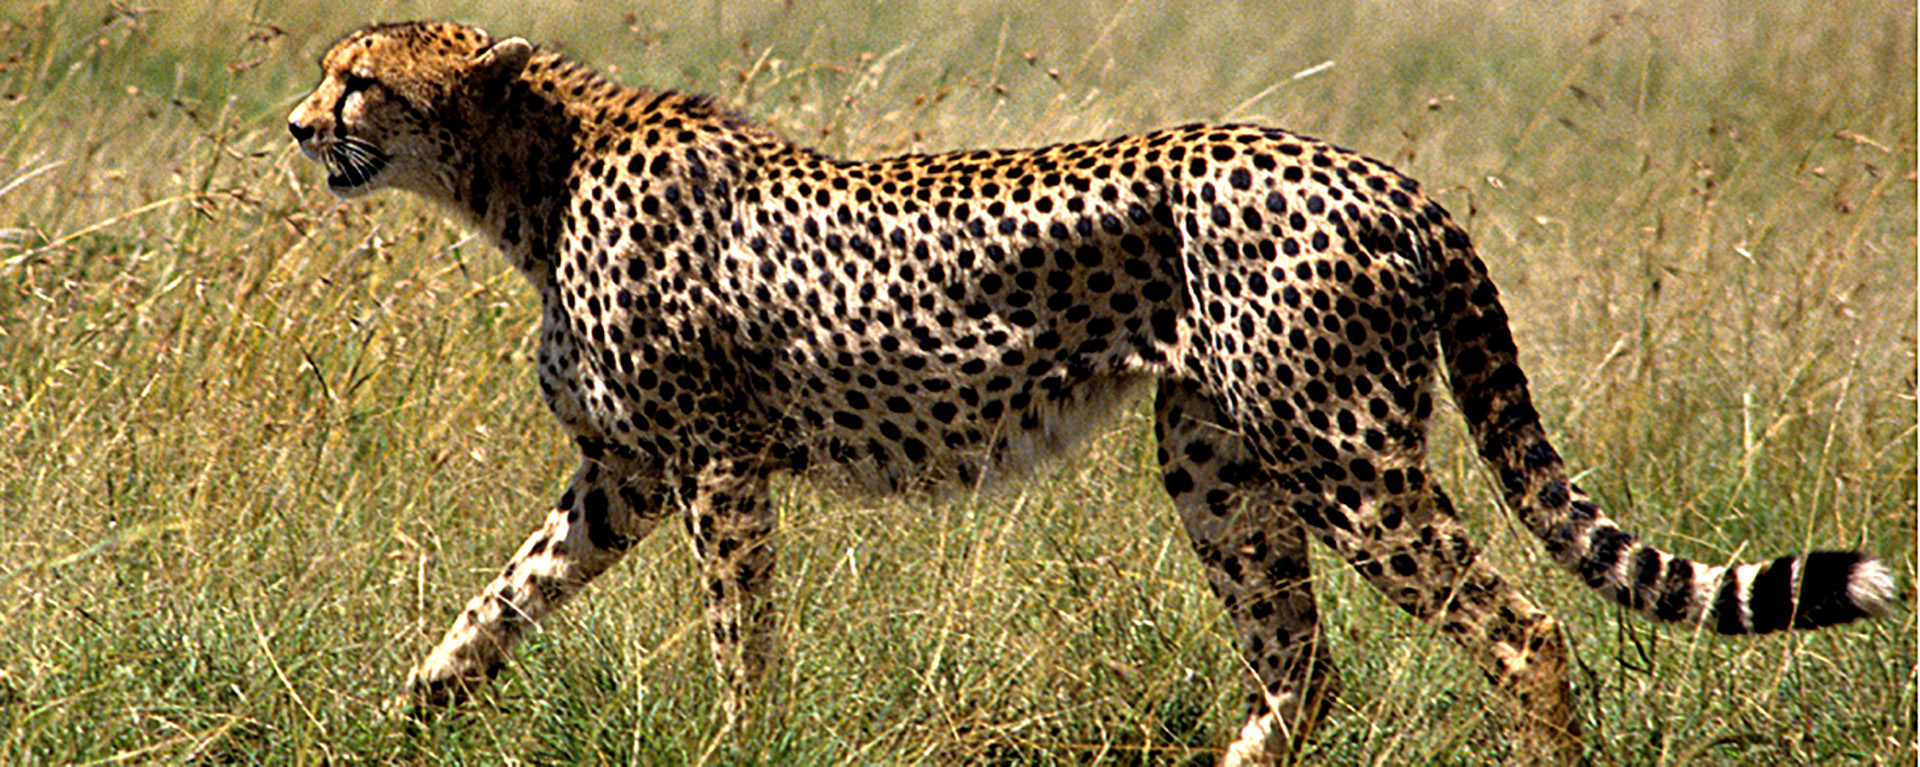 BioTrek Adventure Travel Tours - Tanzania cheetah